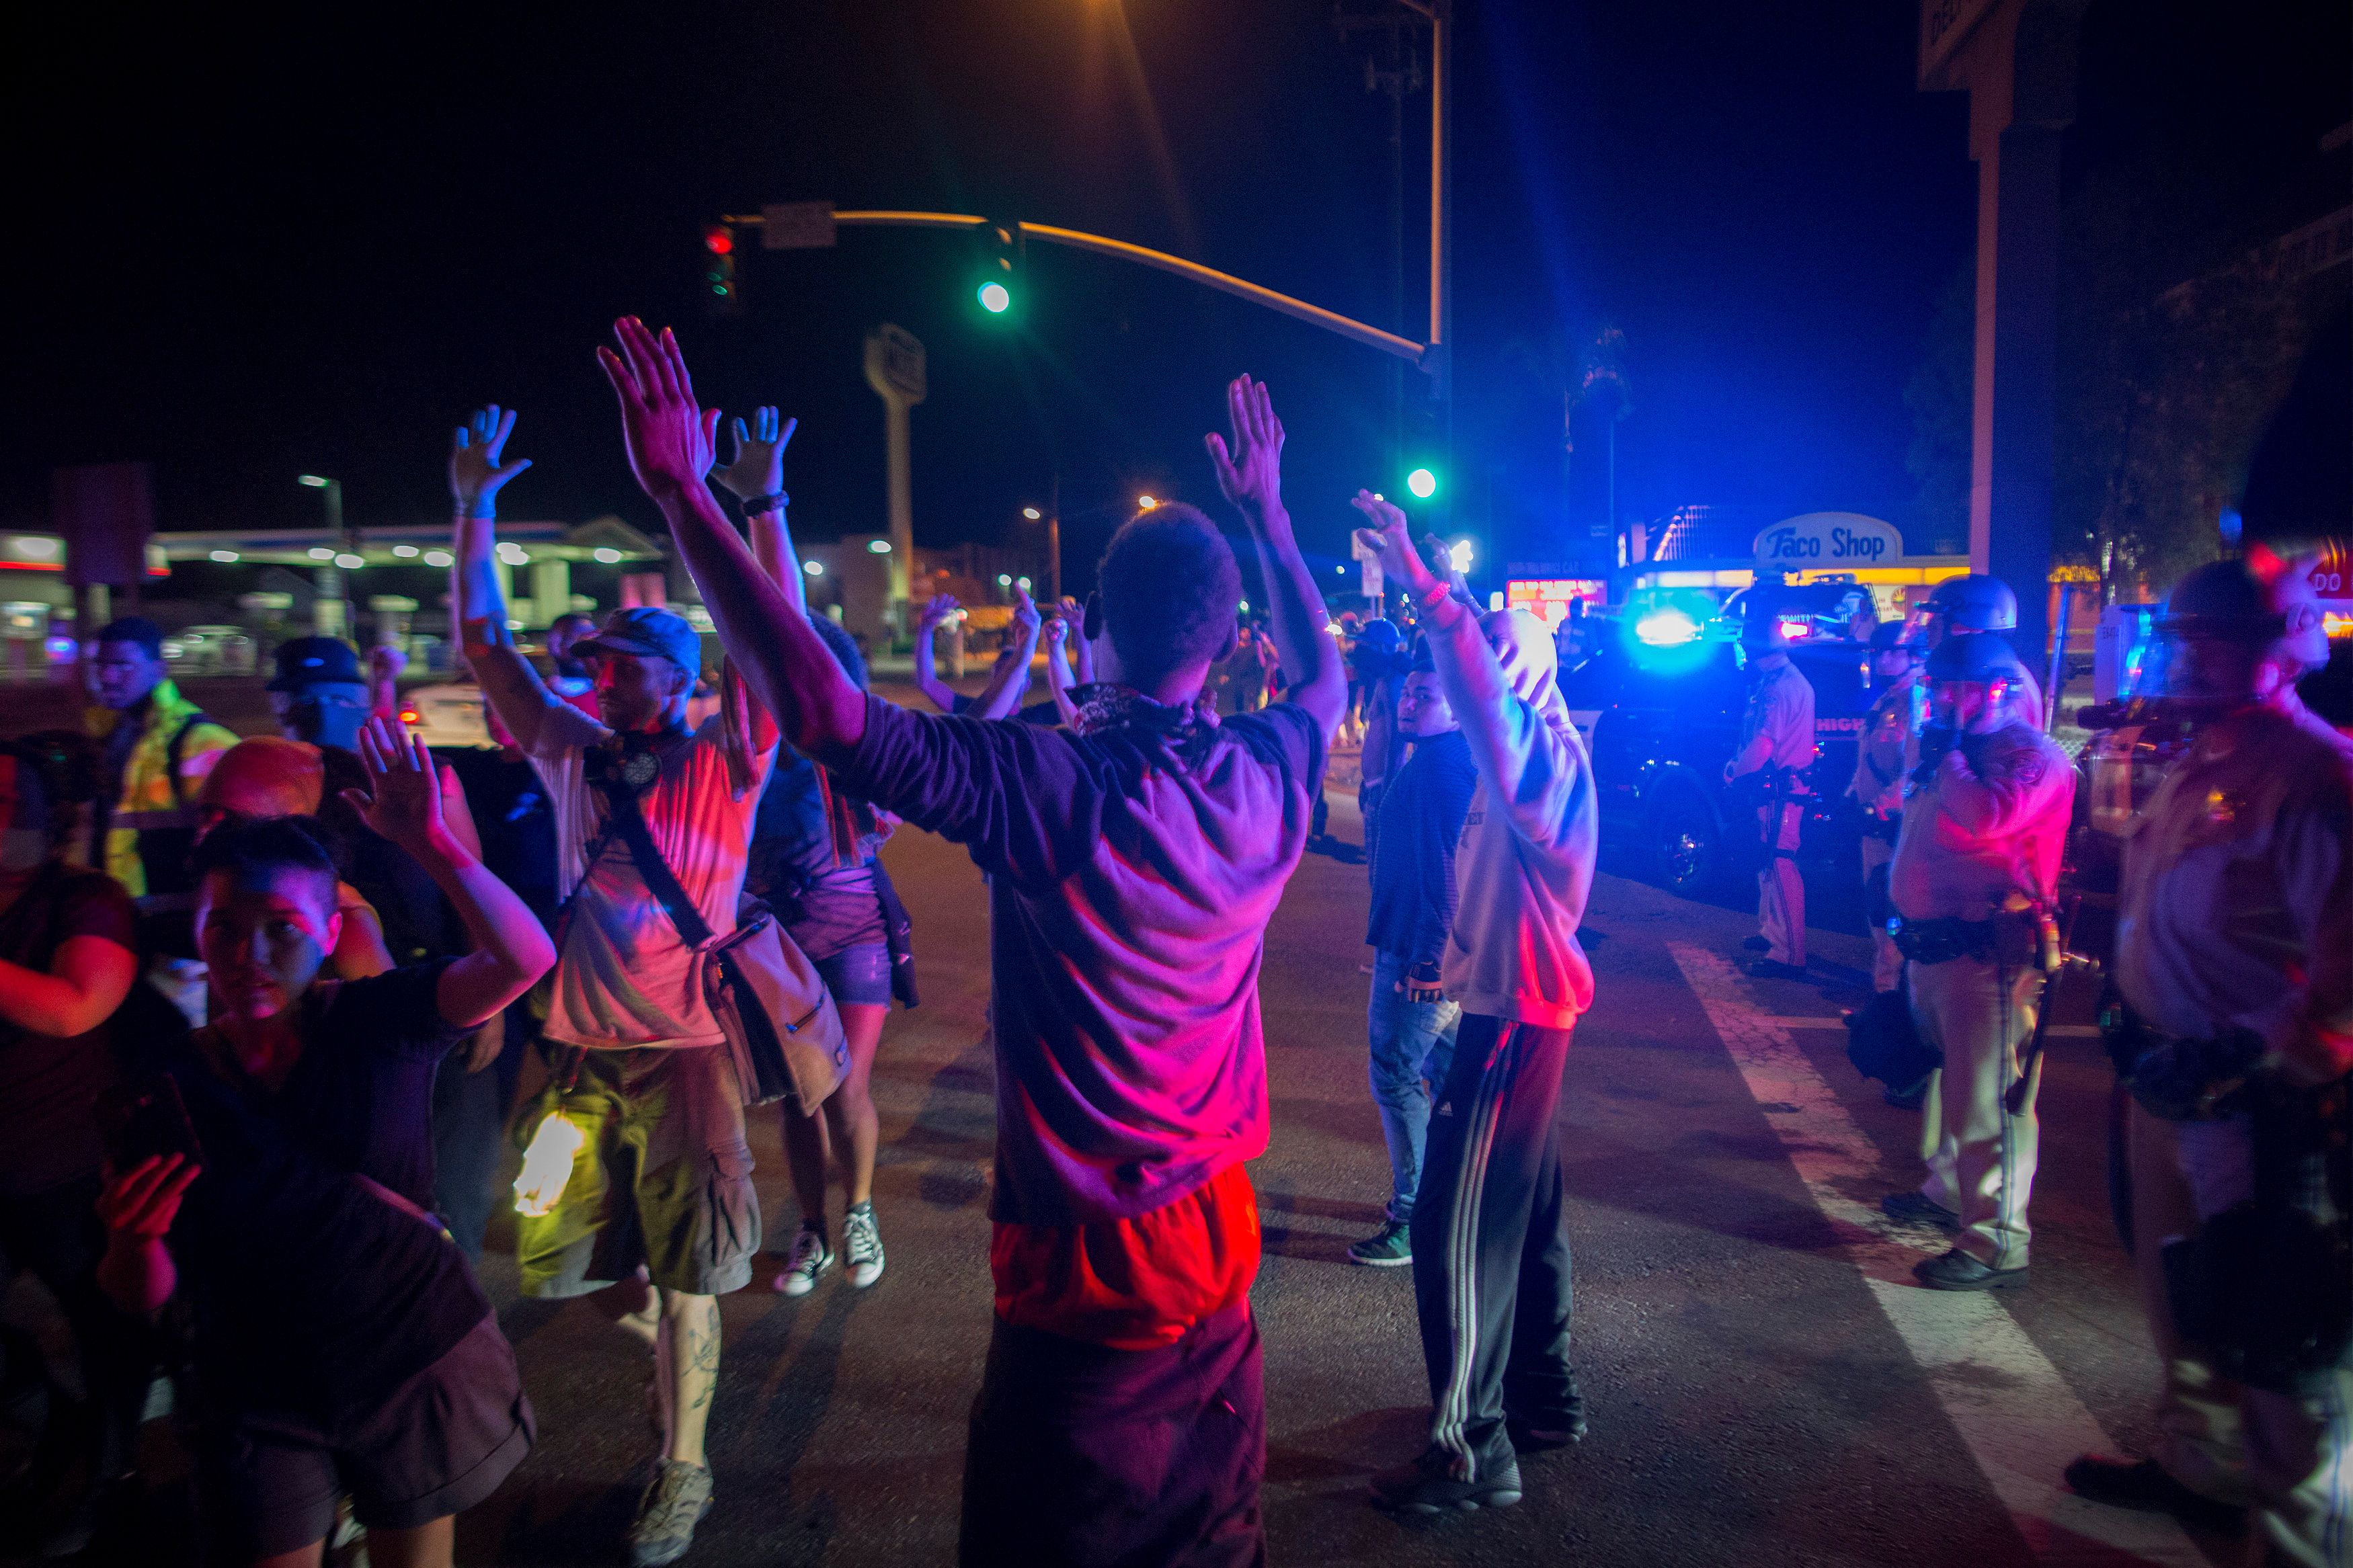 EL CAJON, CA - SEPTEMBER 30: Protesters raise their arms near a line of deputies in riot gear during march in reaction to the fatal police shooting of unarmed black man, Alfred Olango, on September 30, 2016 in El Cajon, California. The security detail consisted of members of The Black Panther Party, Nation of Islam and a coalition of black activist groups. A family member called police to help Olango as he was undergoing an emotional breakdown but shot him when he quickly pulled out an electronic cigarette device.  (Photo by David McNew/Getty Images)